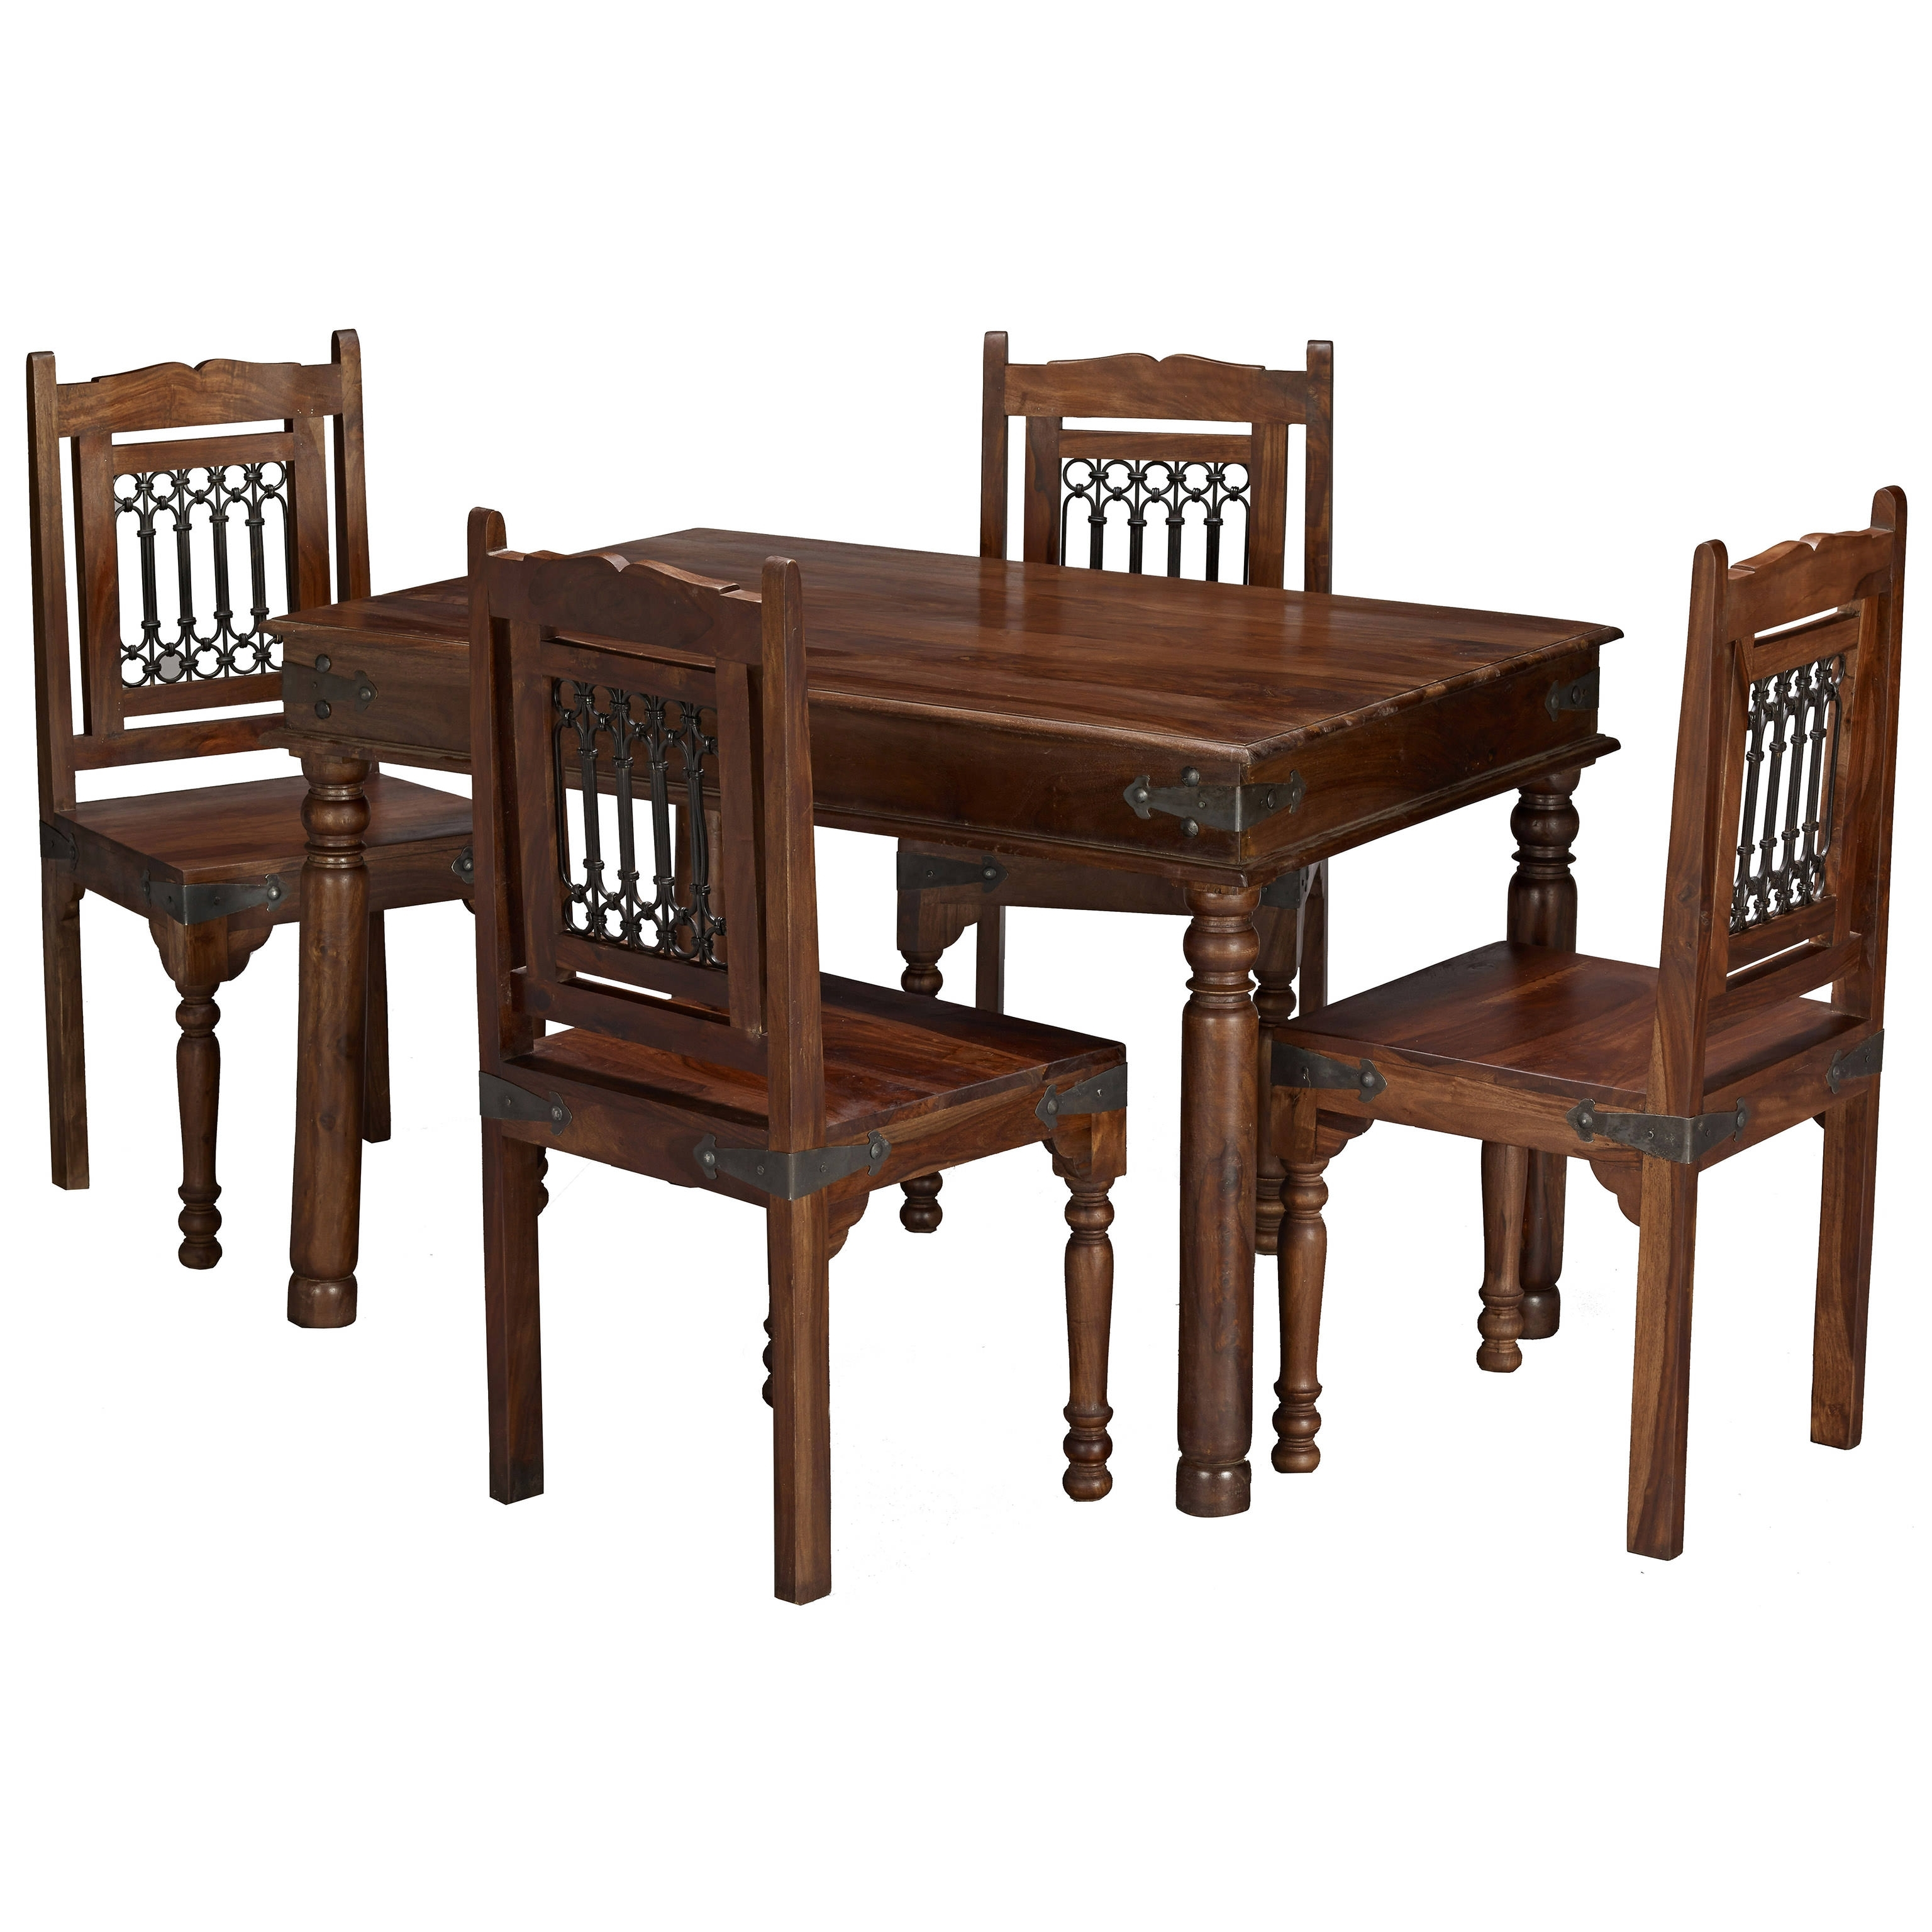 Solid Sheesham Wood Dining Table And Chair Set With 4 Seats (View 24 of 25)